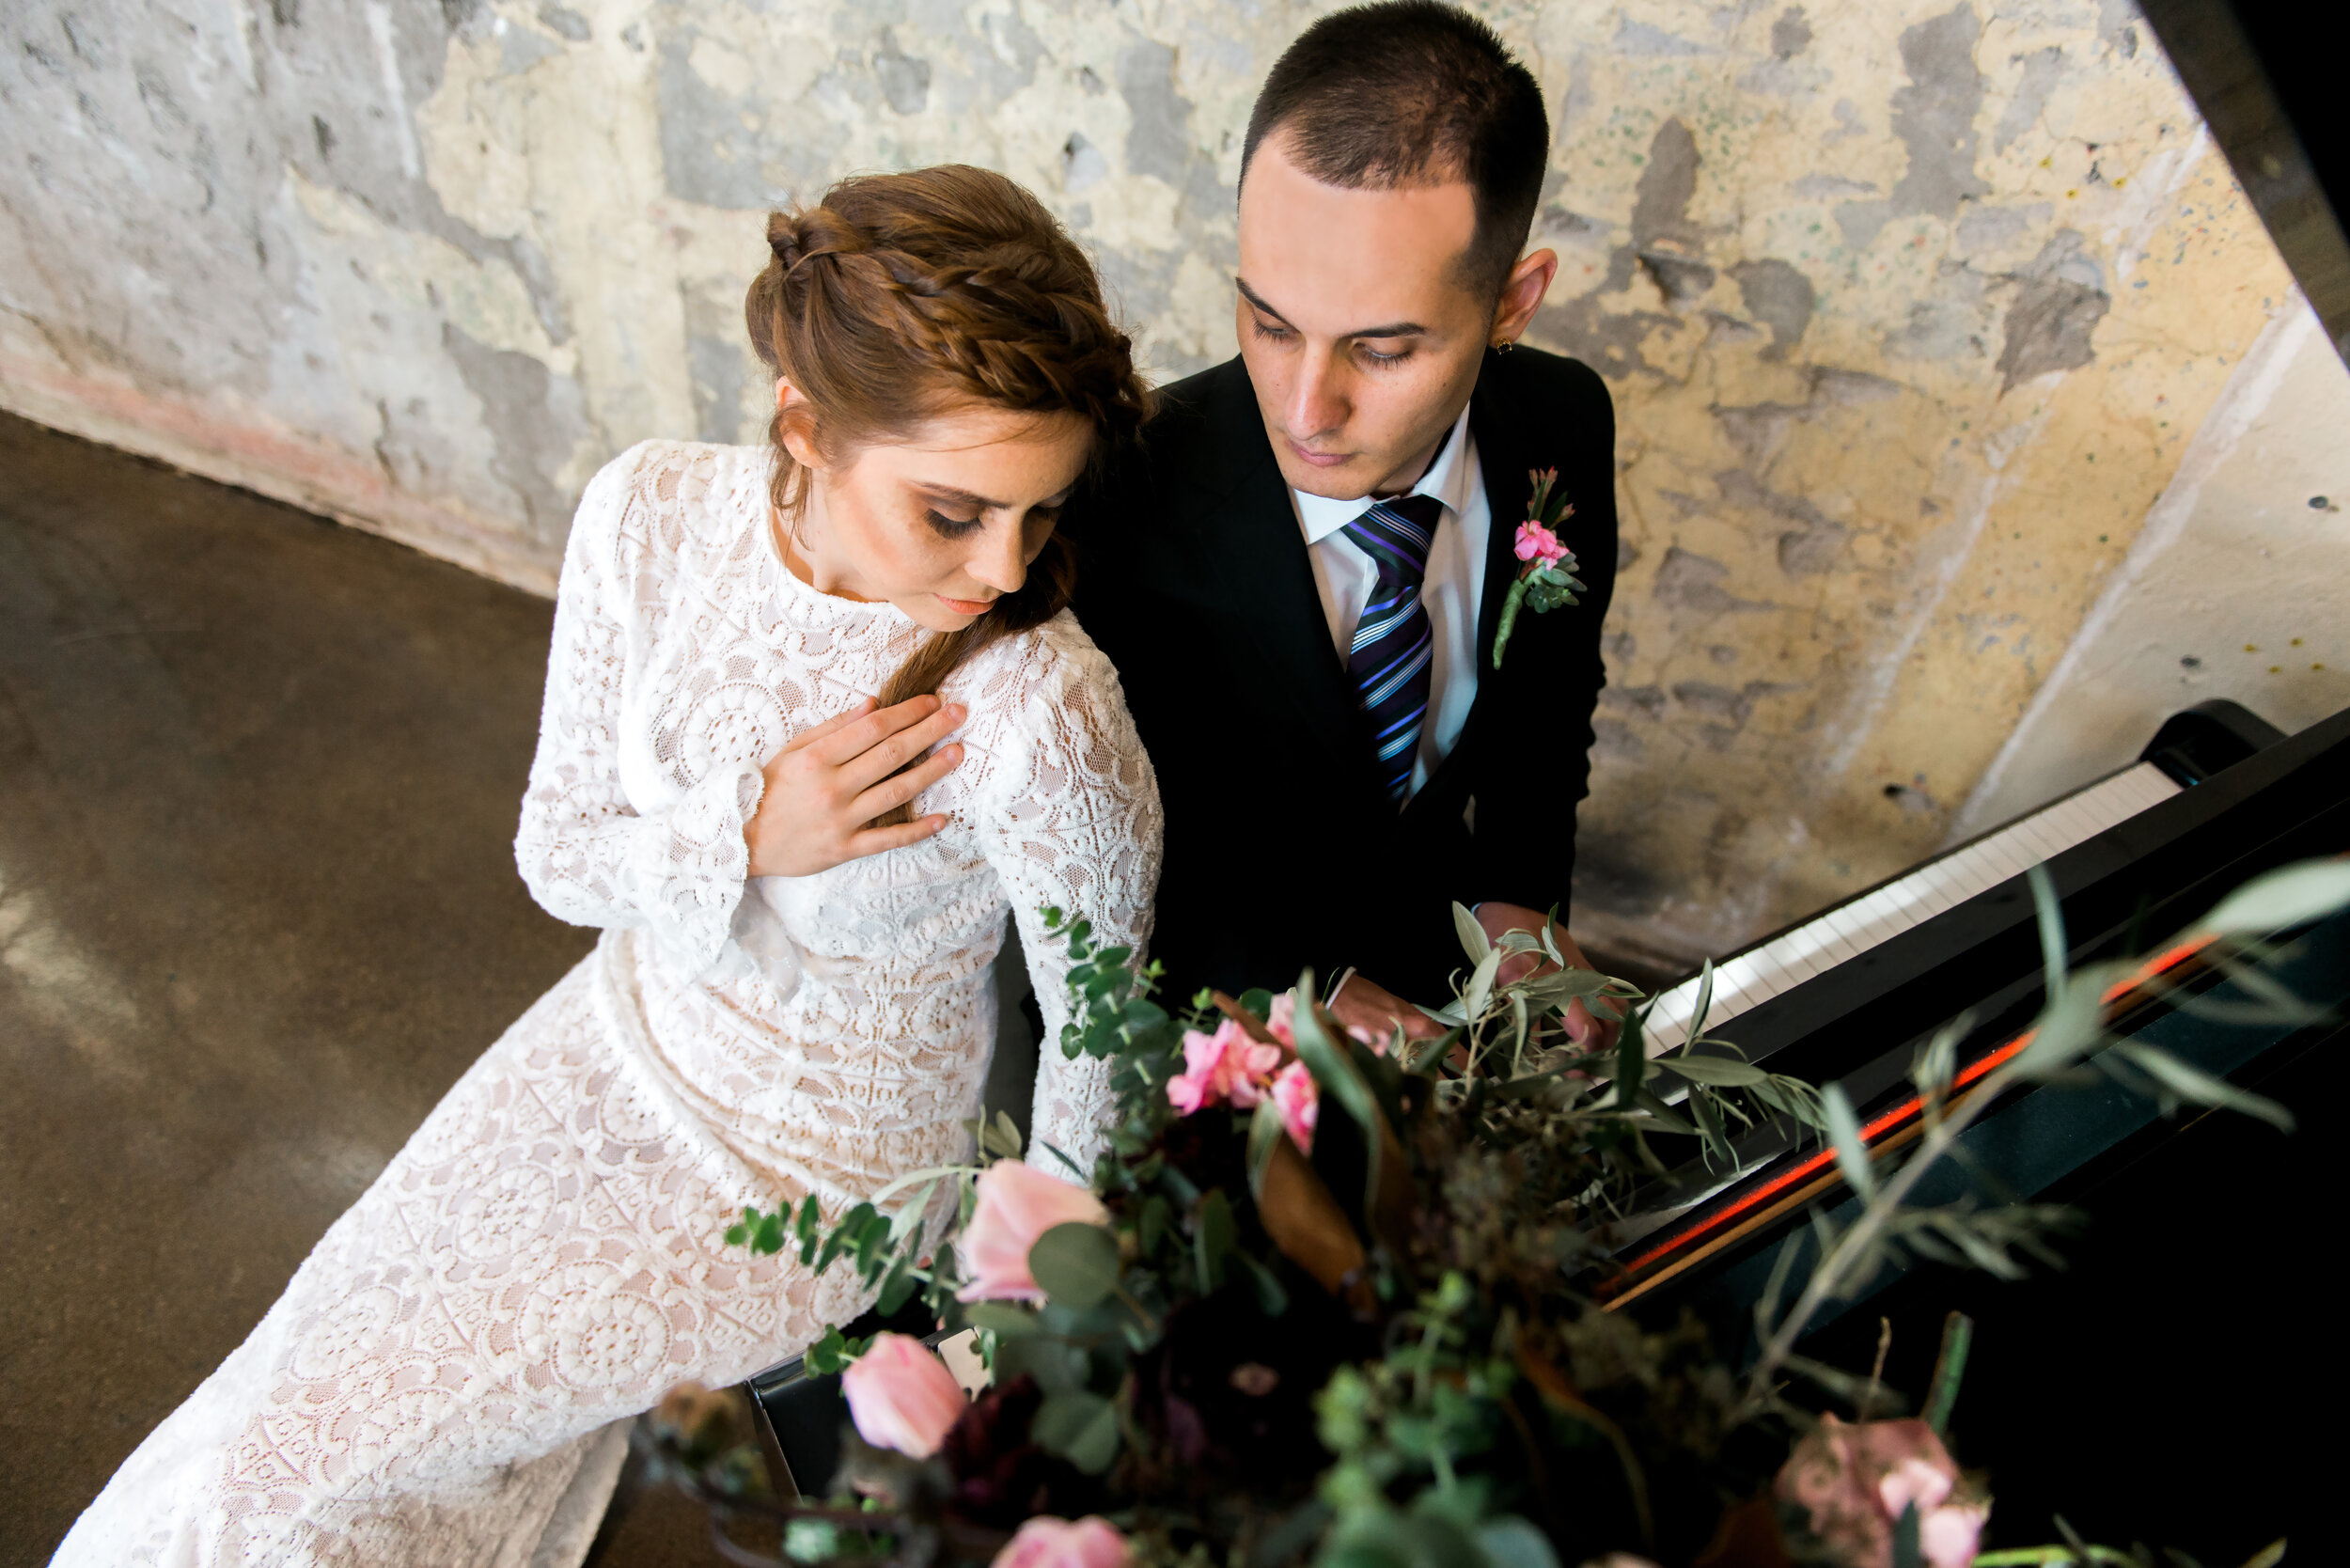 The Daily Wedding featured styled bohemian bride and groom at grand piano custom designed gown by Alis Fashion Design.jpg